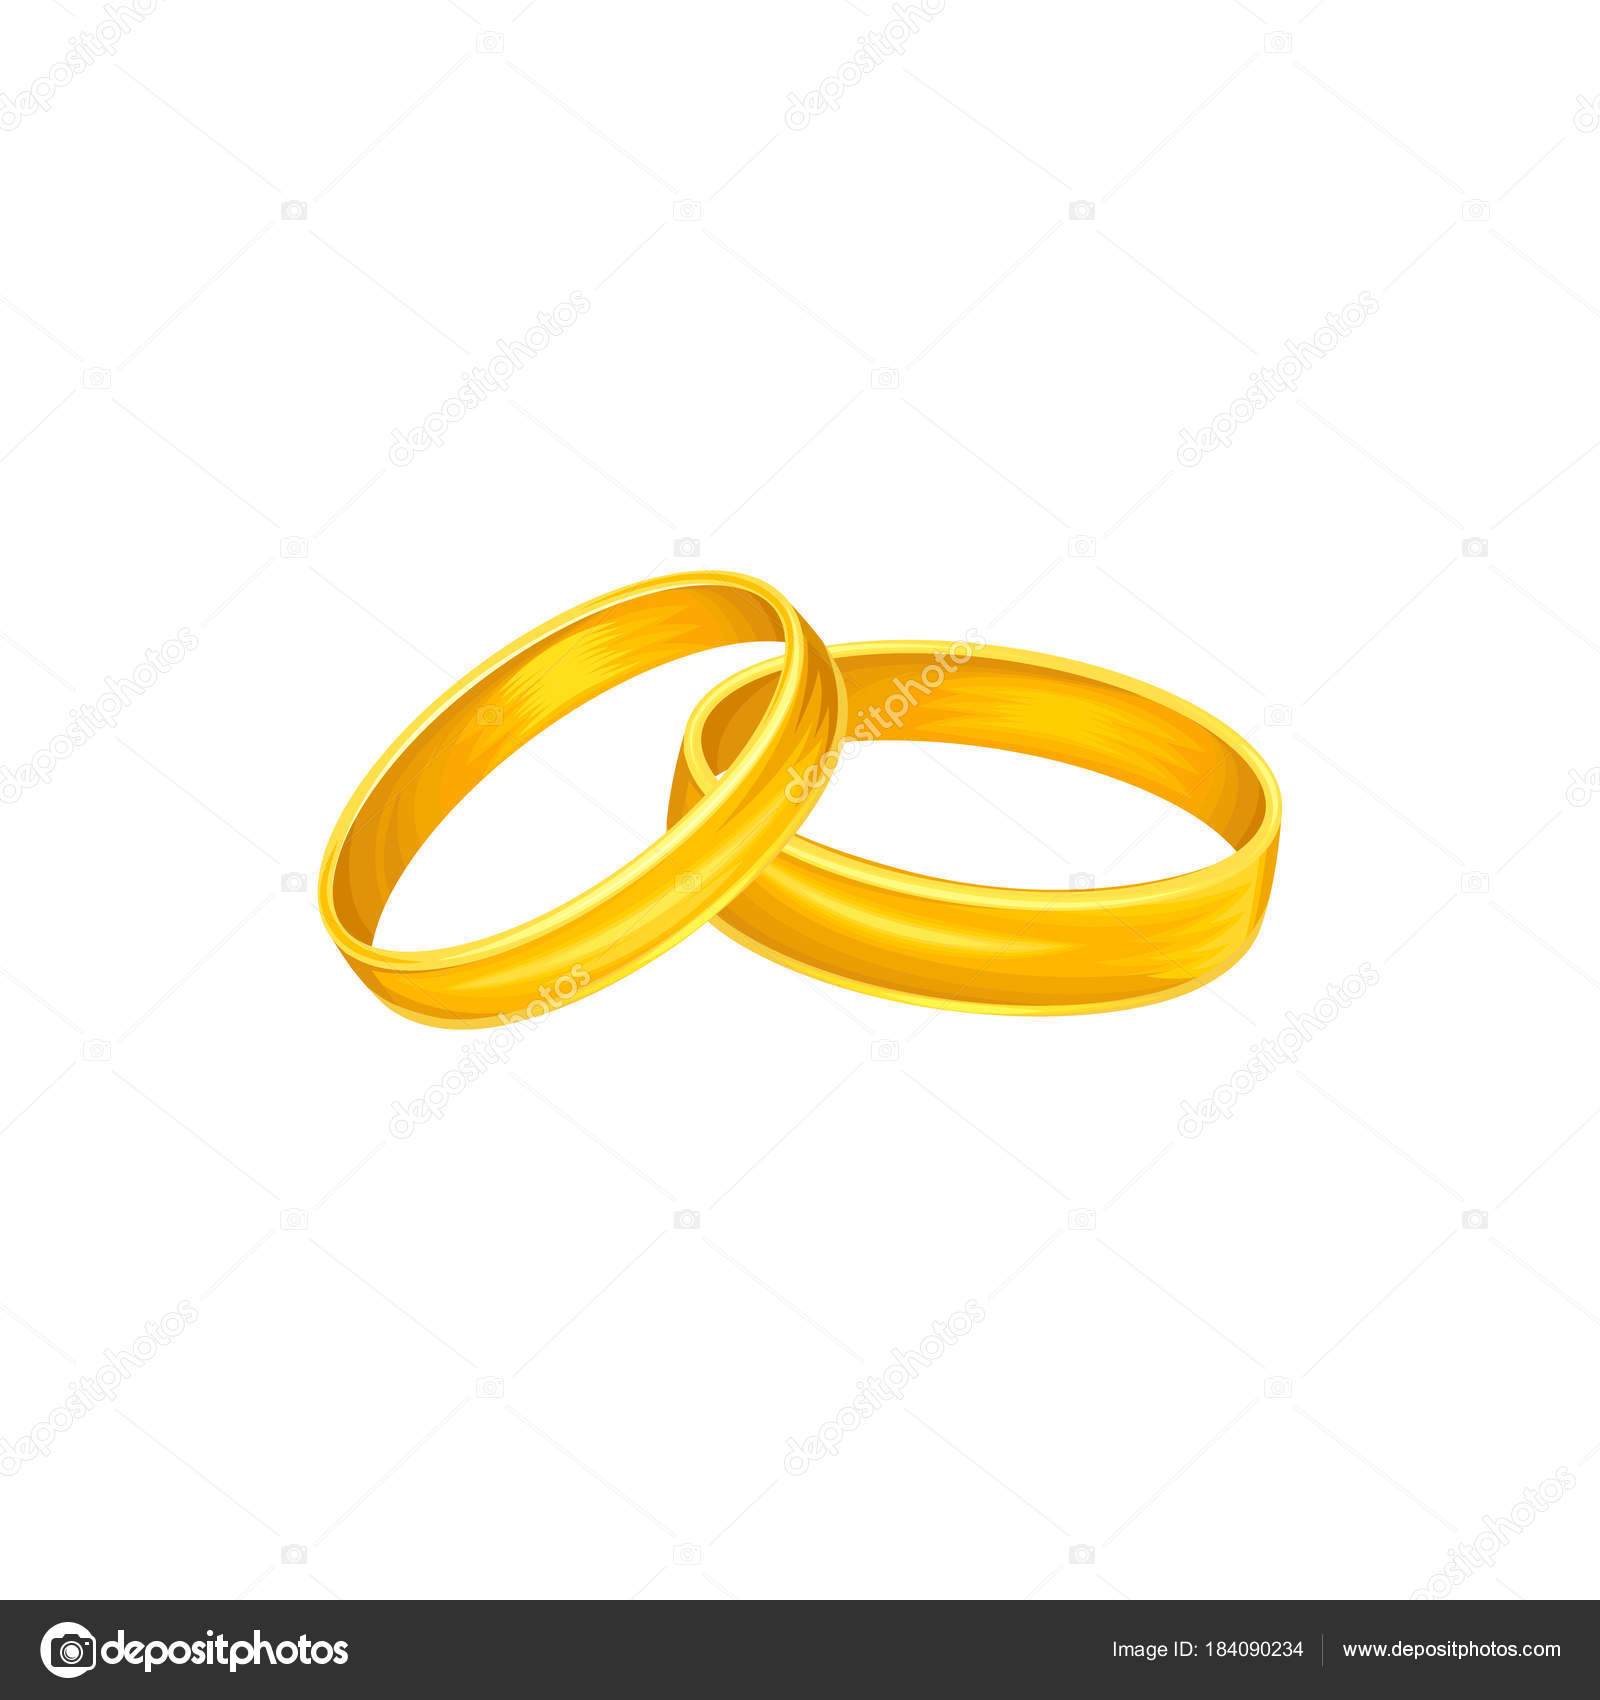 imgs ring rings jewelry download golden earnings free images png gold